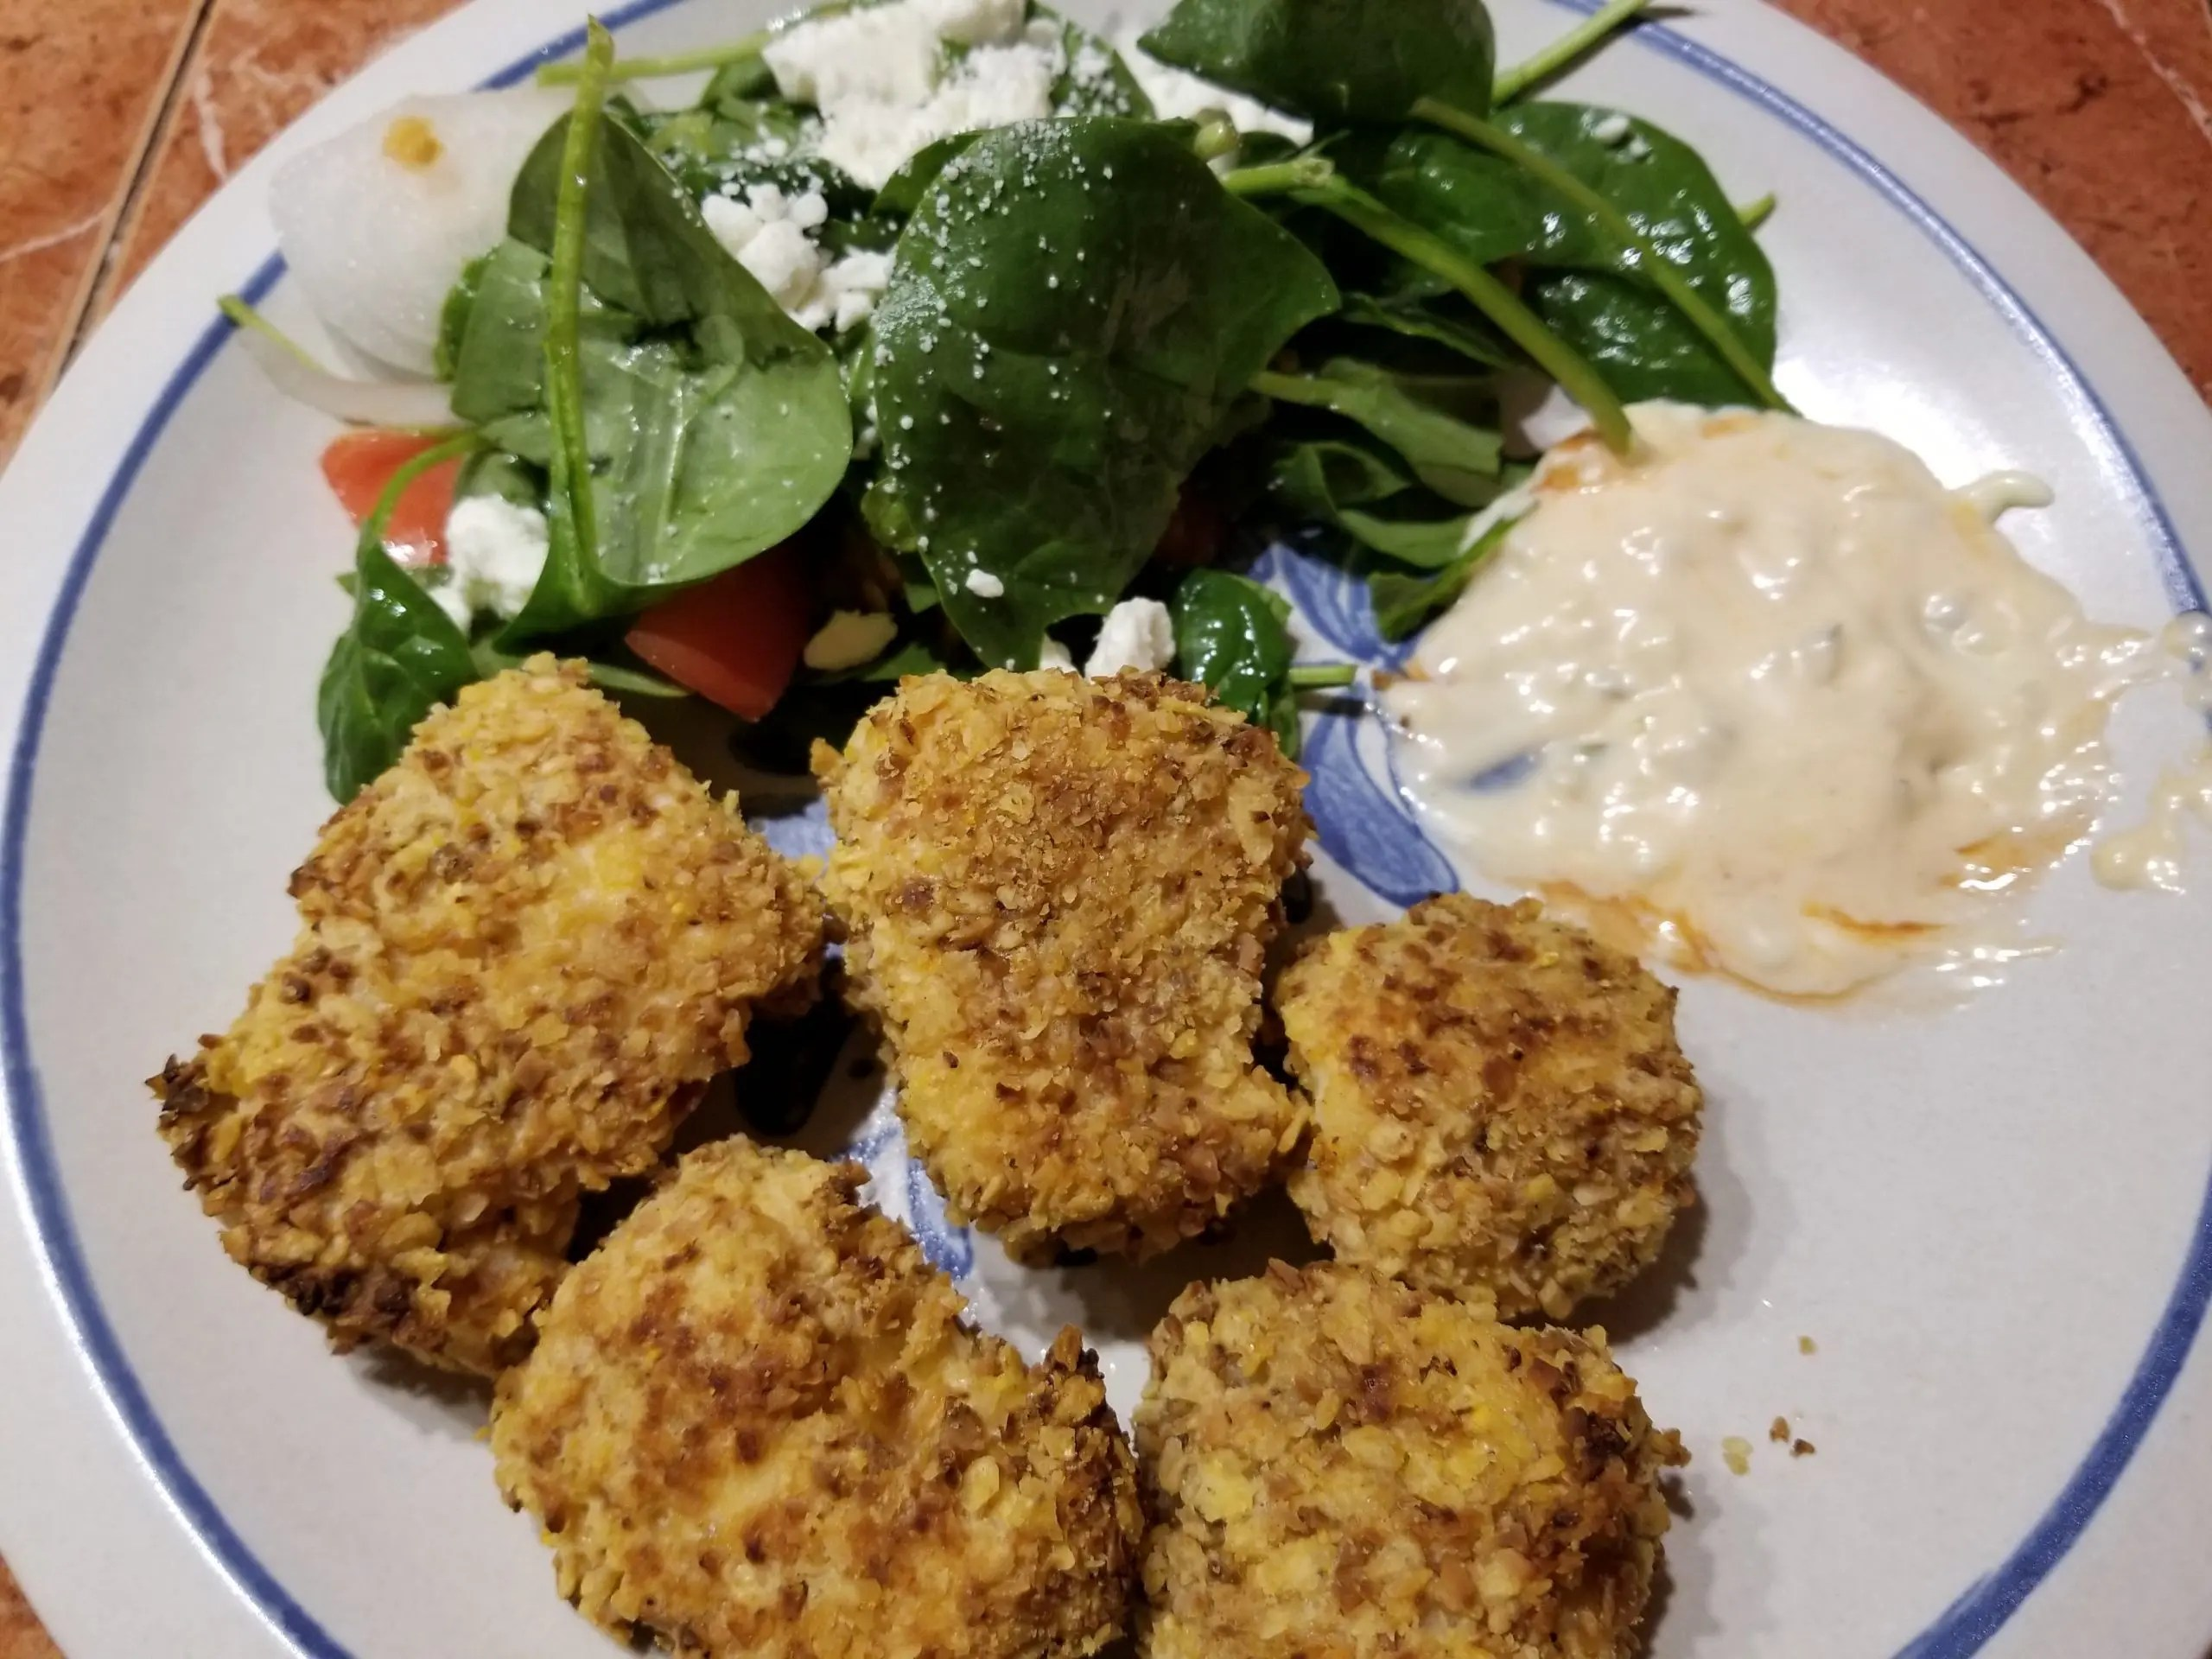 shows coconut fish nuggets with spicy sauce and salad